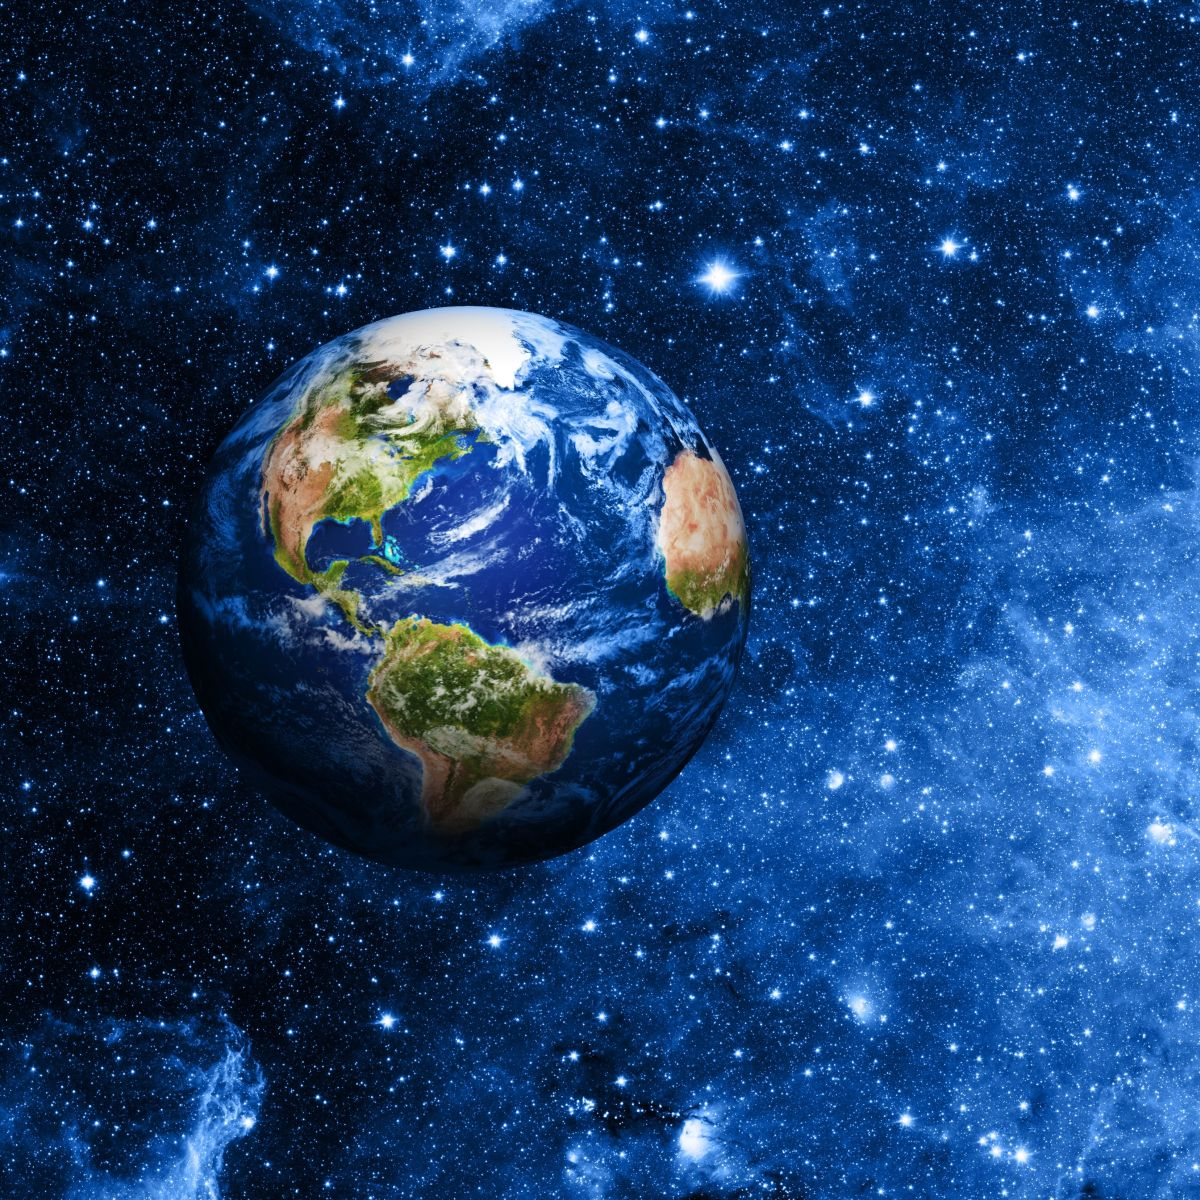 Twentieth international summer school on vacuum electron and ion - Physicists Have Now Found A Way To Measure Earth S Rotation In An Extremely Accurate Way Photo Fotolia Id 60274978 By Denis Tabler